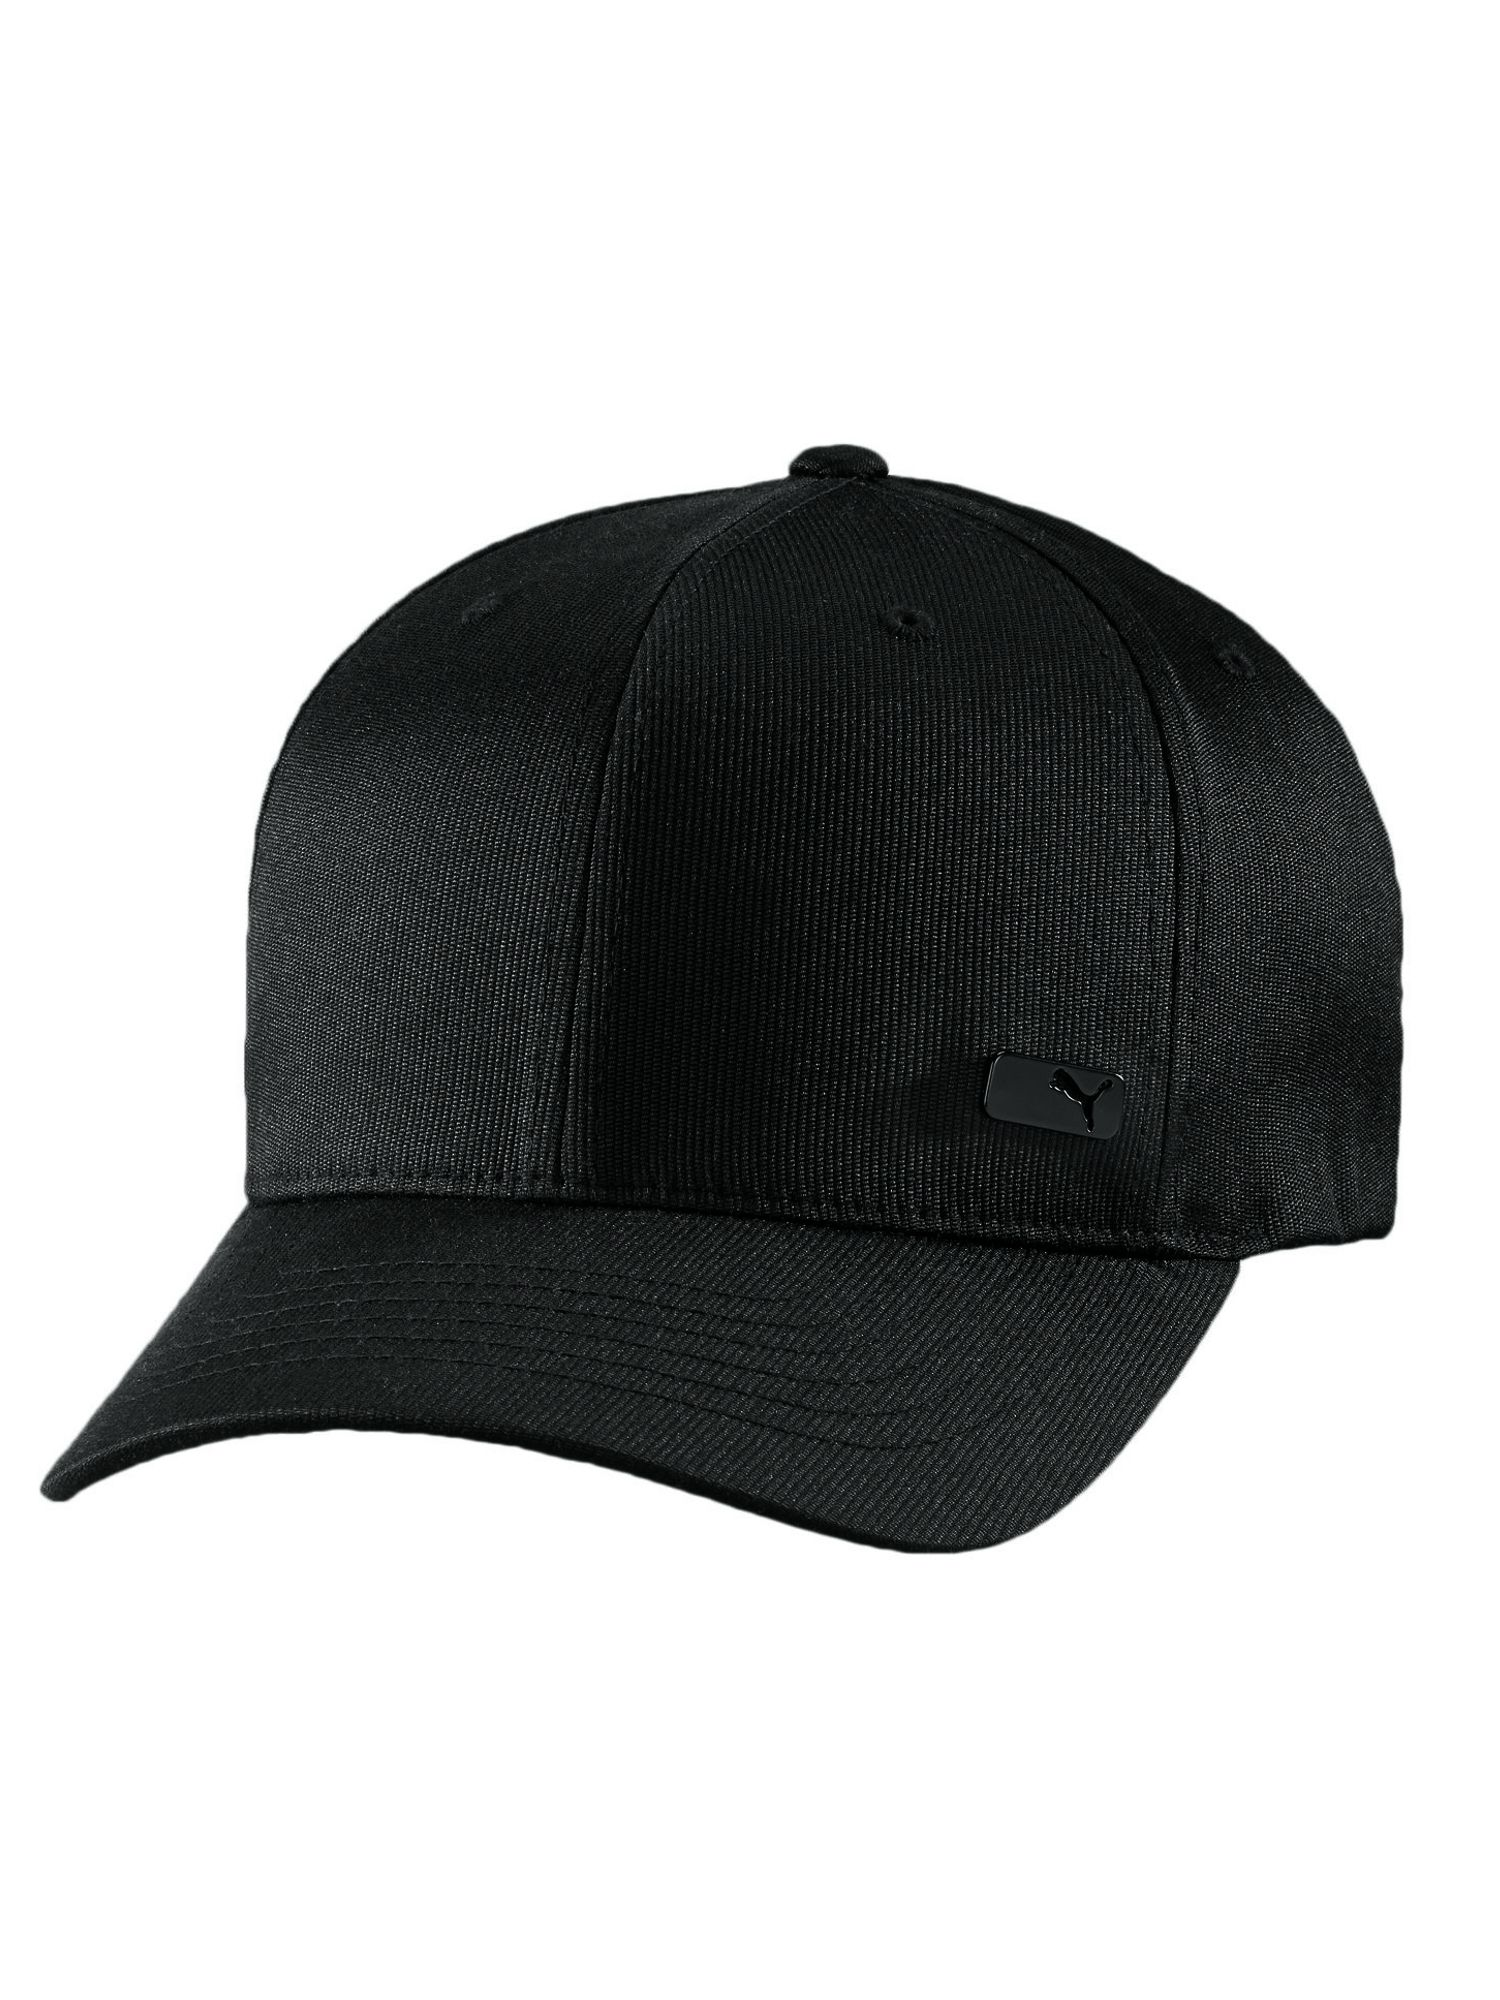 Lux performance adjustable cap